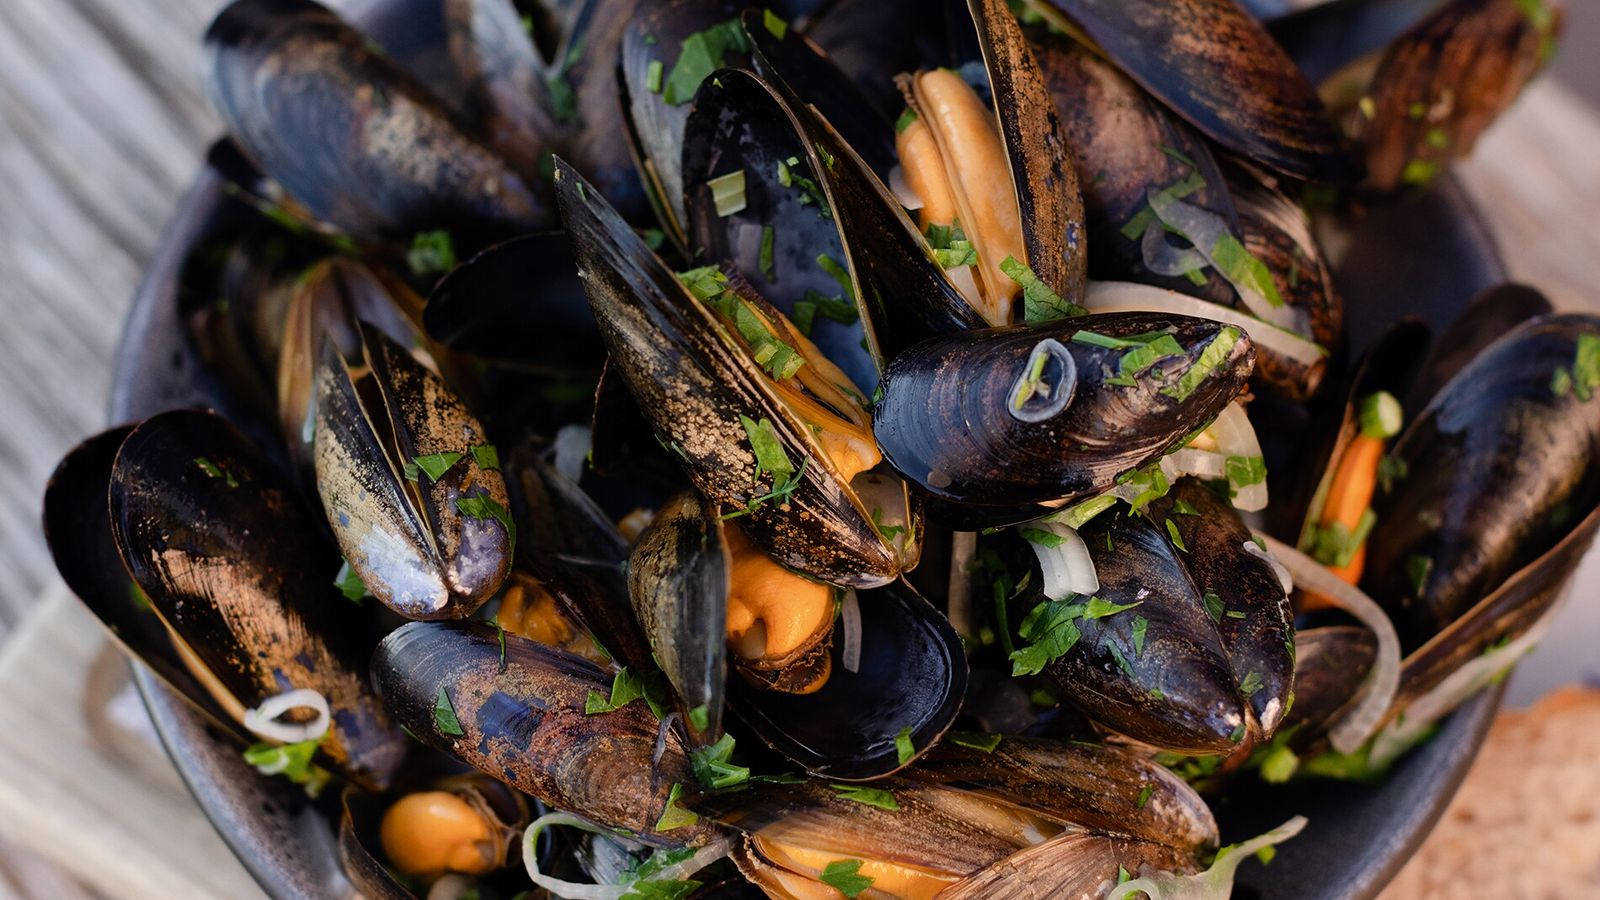 Mussels at the Harbourmaster Hotel. Built around 1812, it once enabled the harbourmaster to keep a ...